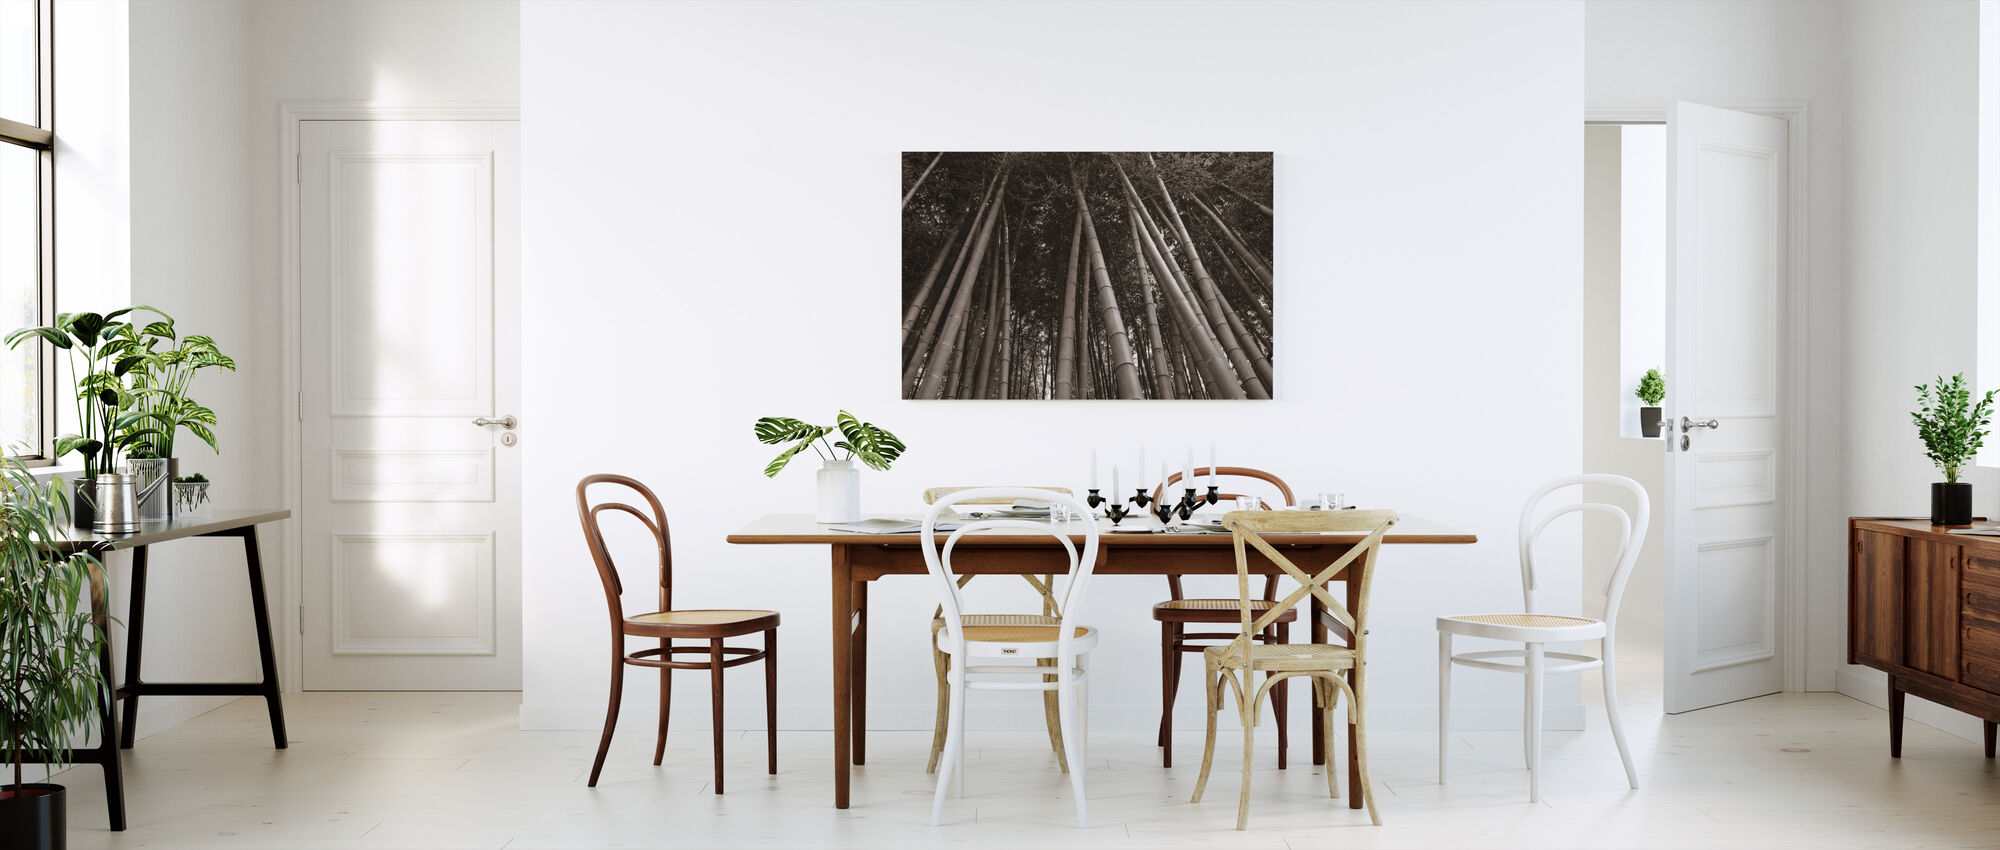 Bamboo Forest - Sepia - Canvas print - Kitchen